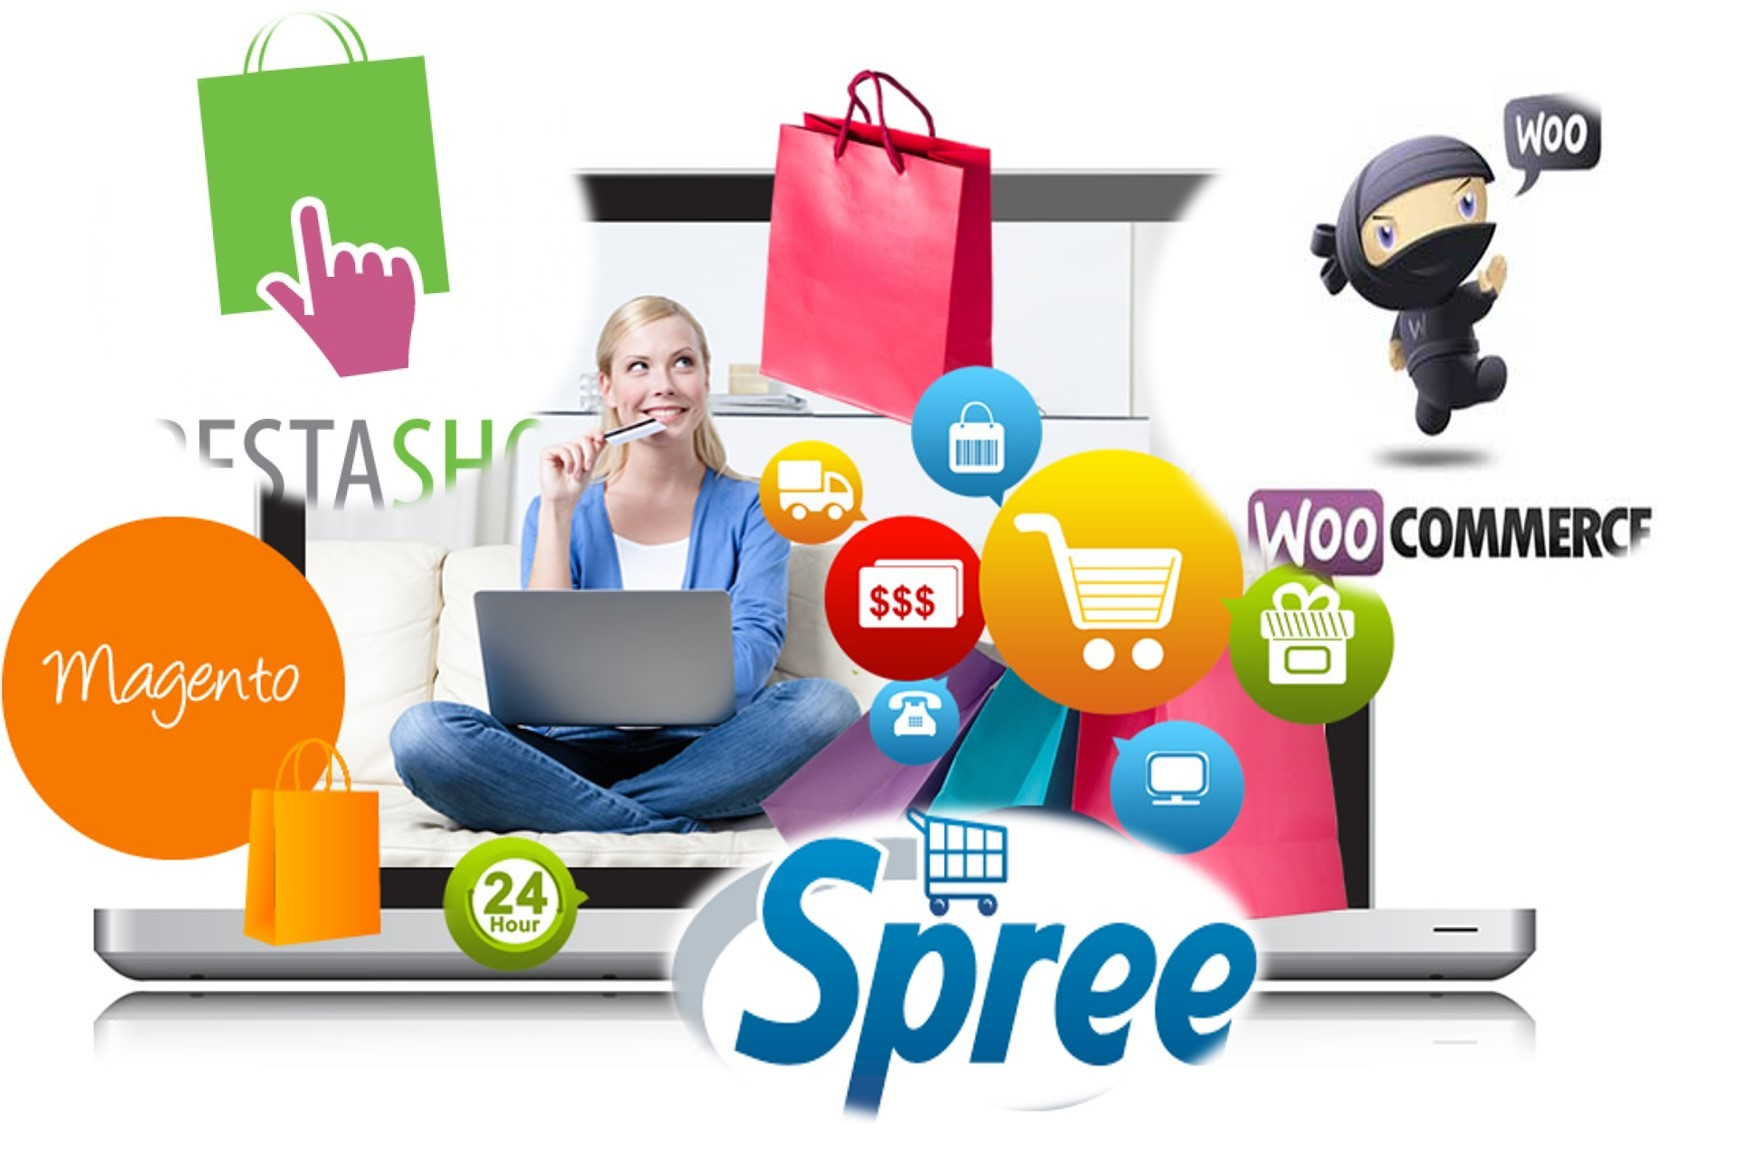 10 Best Ecommerce Open source Platform & Shopping cart Software